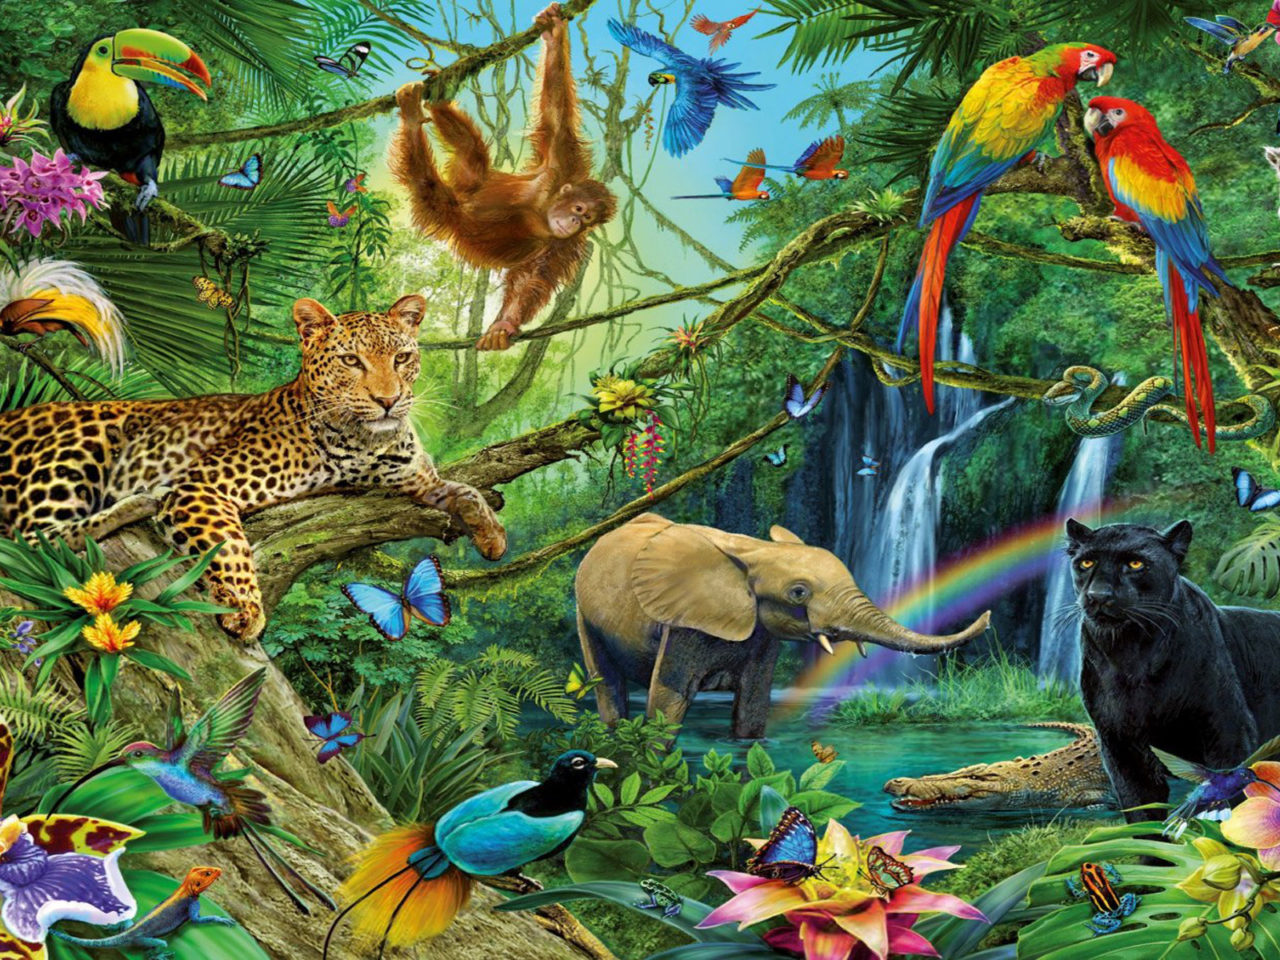 Iphone X Motion Wallpaper Animal Kingdom Dwellers Of The Jungle Desktop Backgrounds